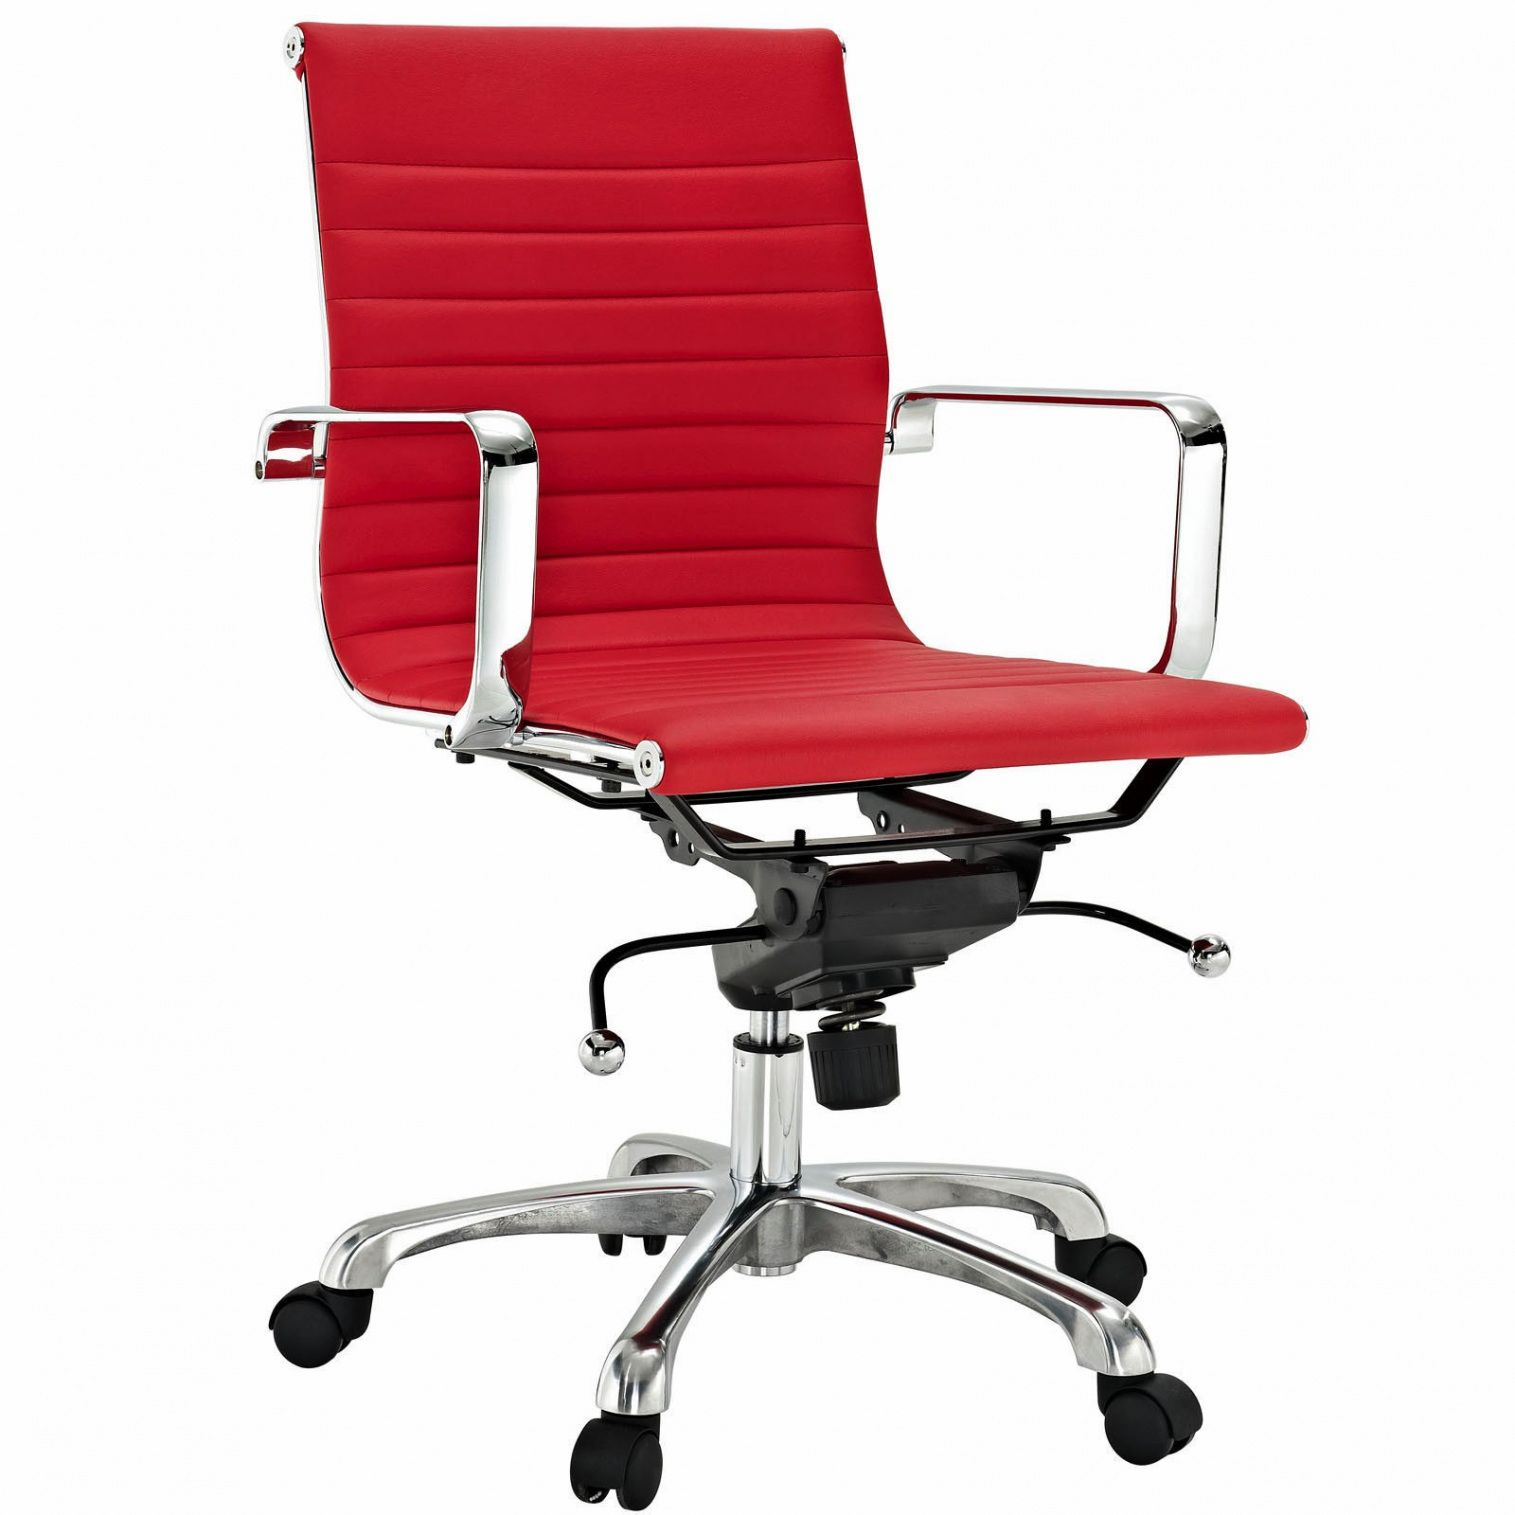 reclining office computer itm chair red point westwood swivel luxury var massage